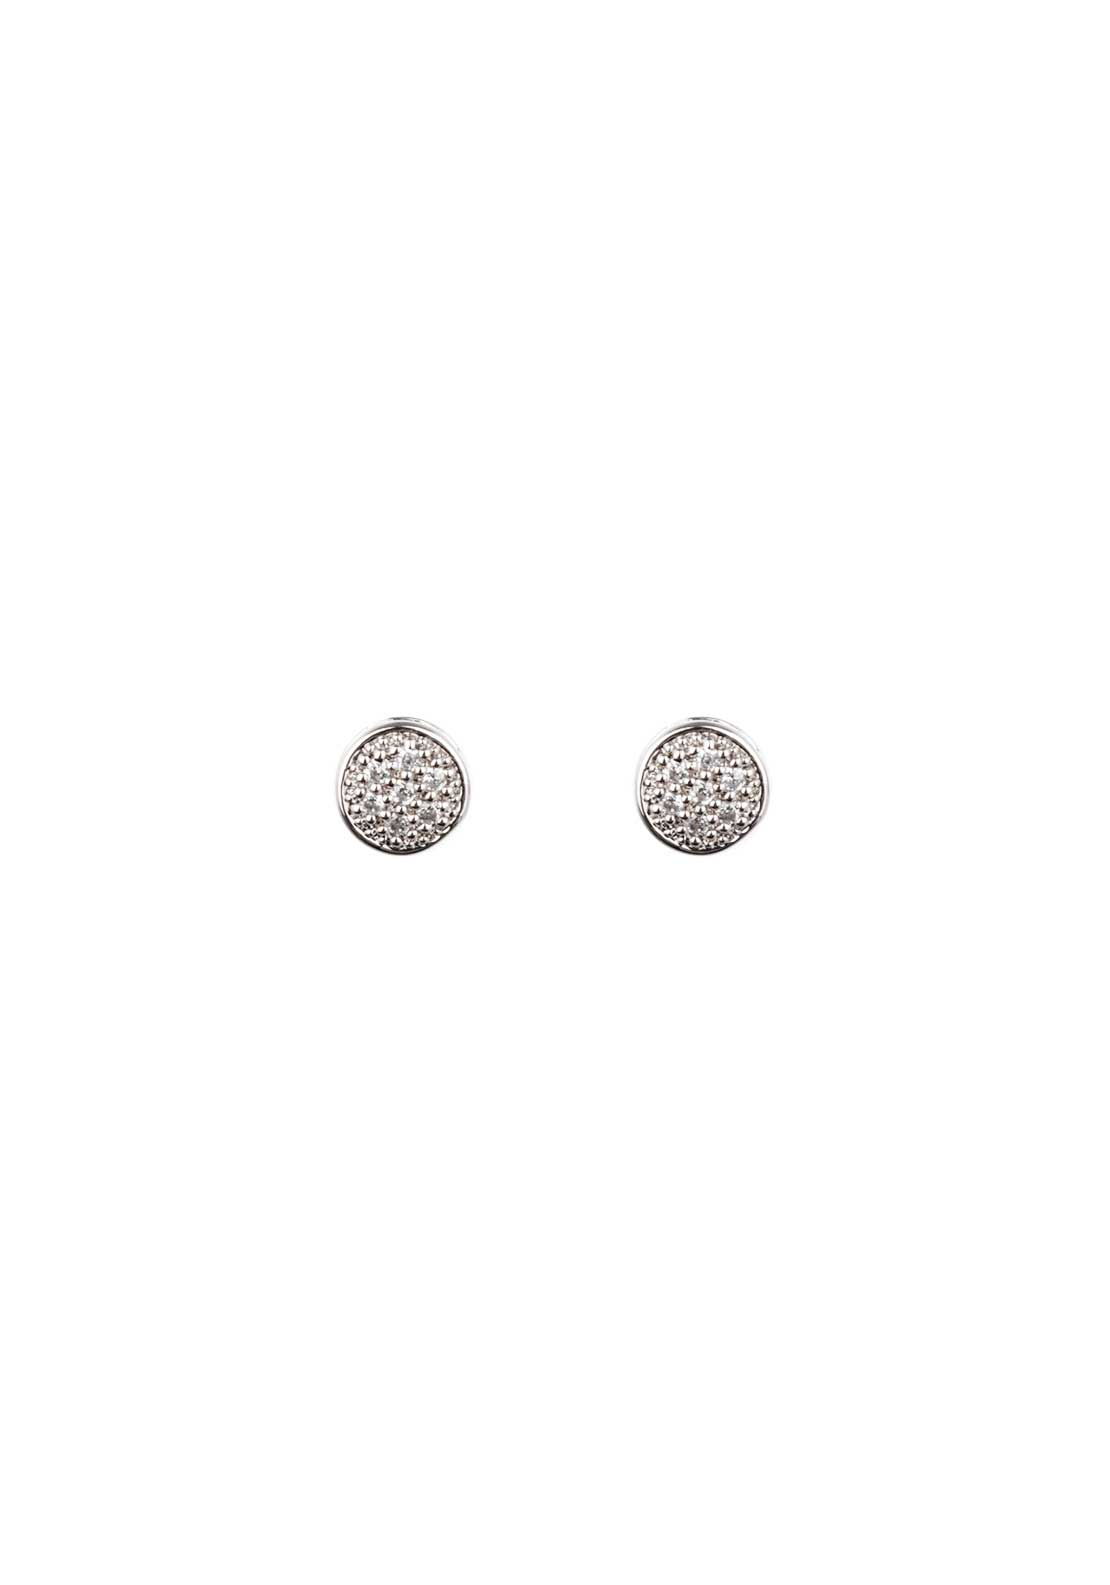 Absolute Jewellery Girls Tiny Pave Stud Earrings, Silver